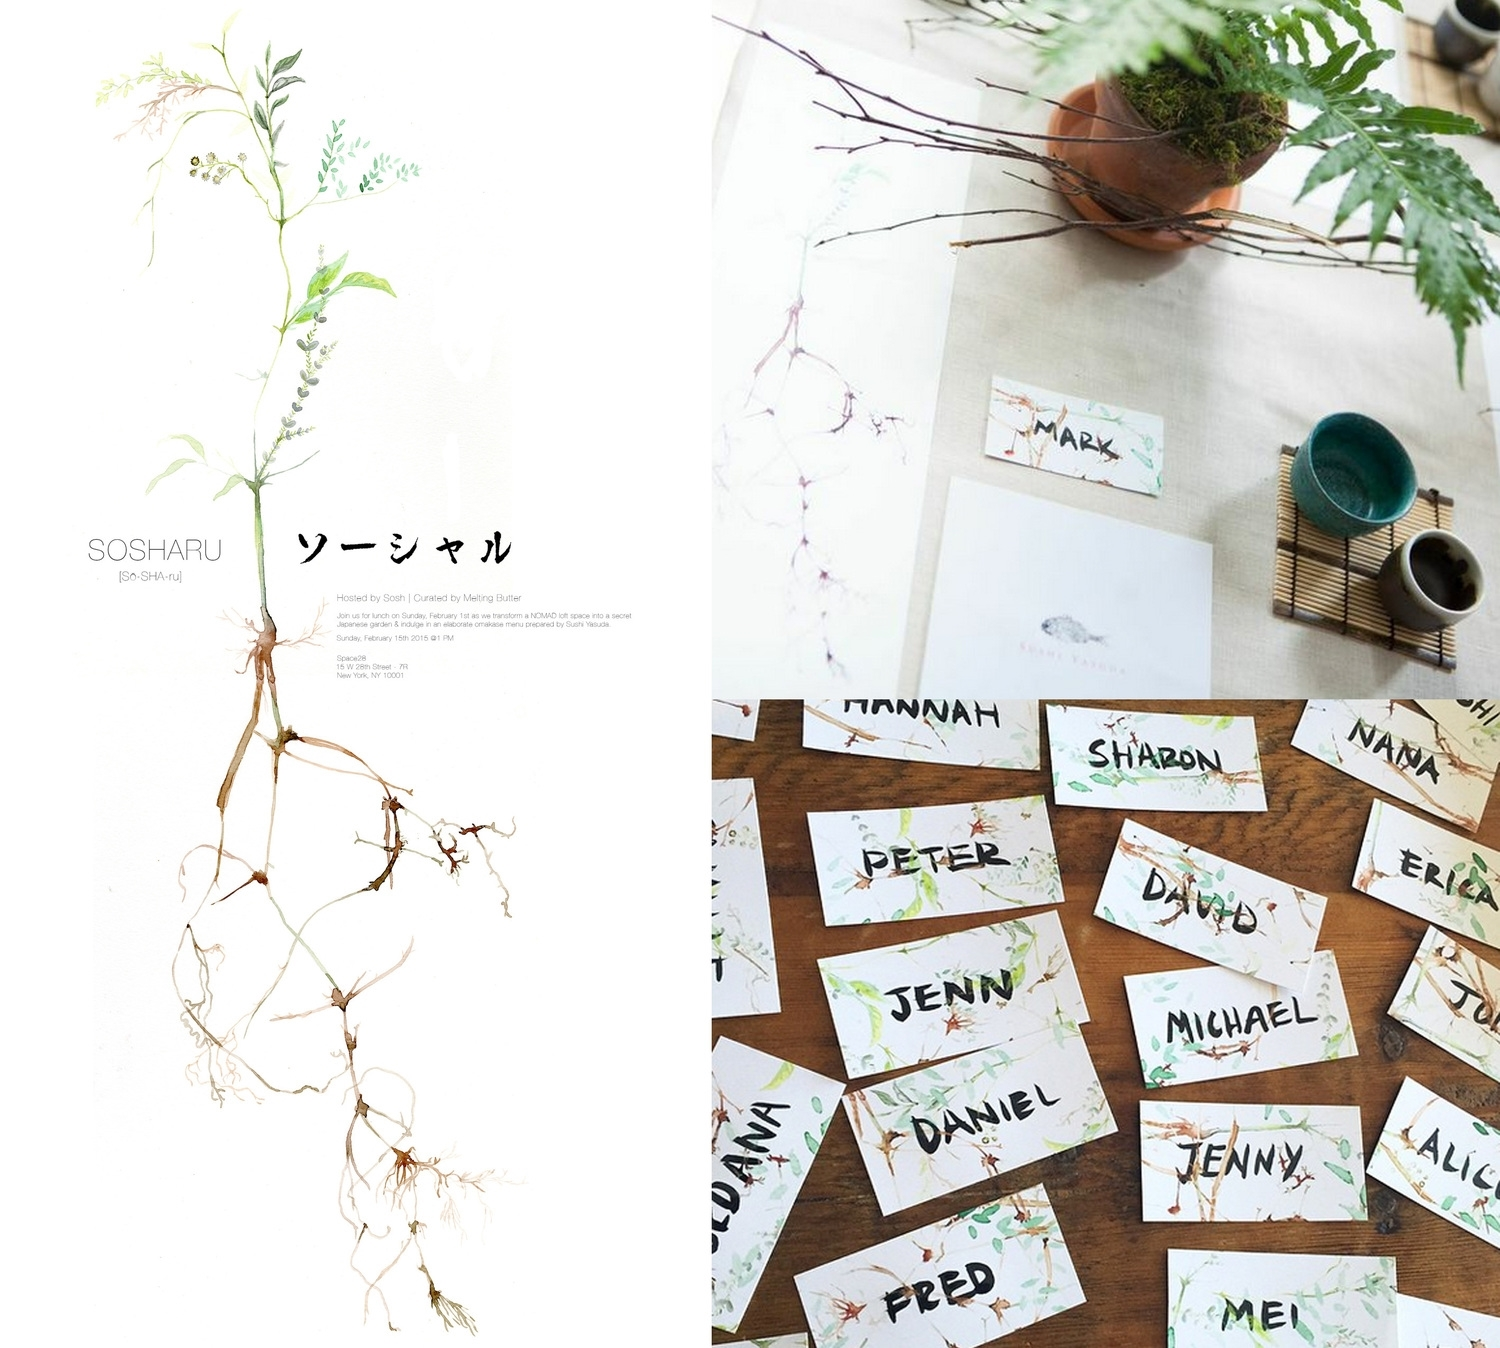 """Created the Invite, menu, and place cards for the Japanese Garden Installation """" Sosharu"""" curated by Melting Butter and produced by SOSH."""